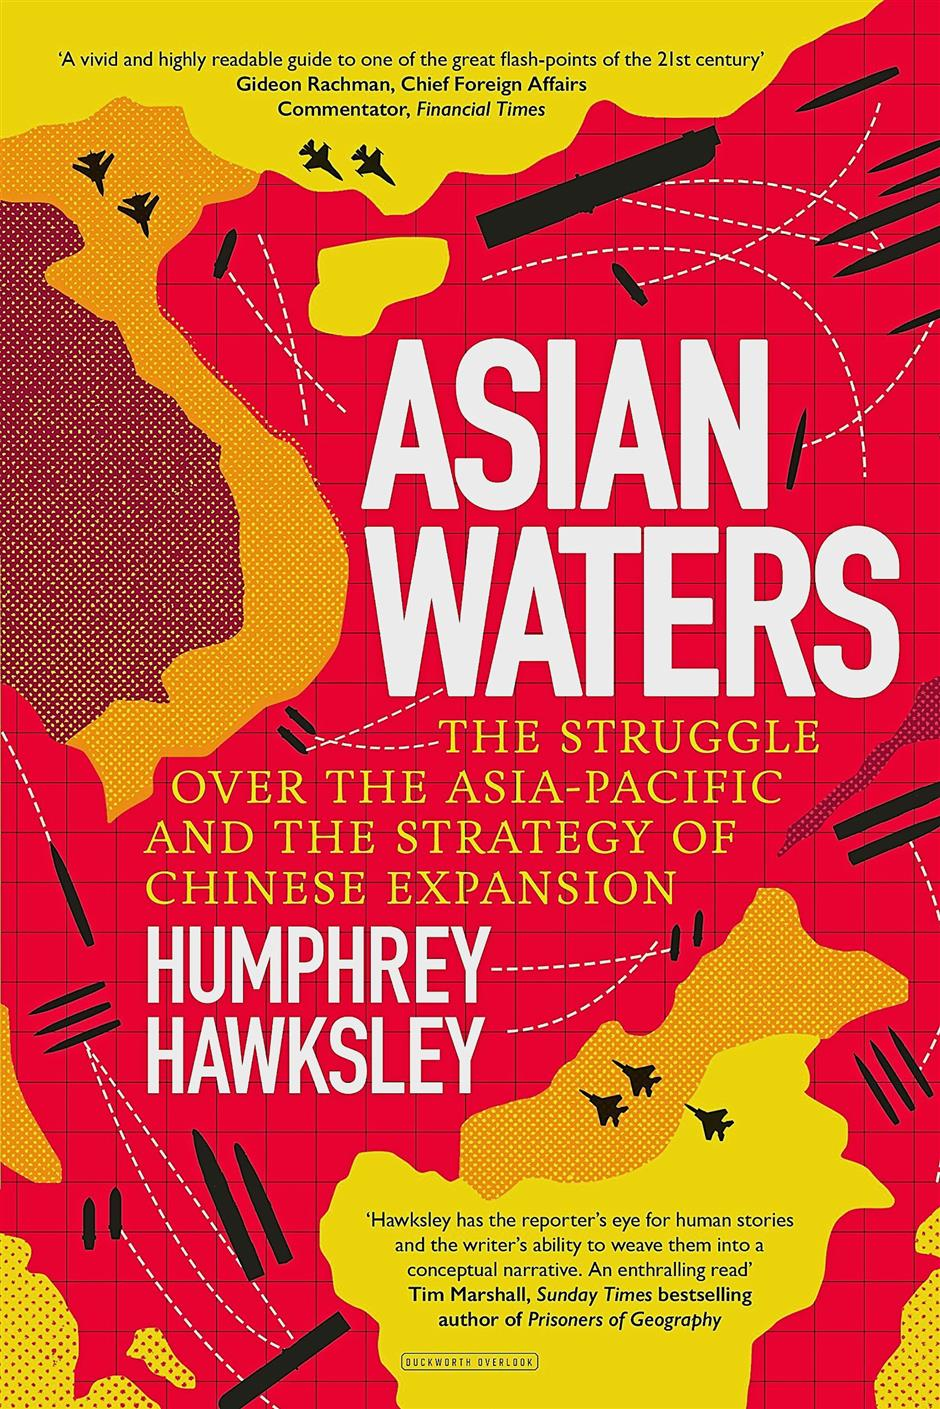 Relatable narrative fiction: Hawksley's 'Asian Waters' provides a snapshot of China's role in SEA maritime waters.